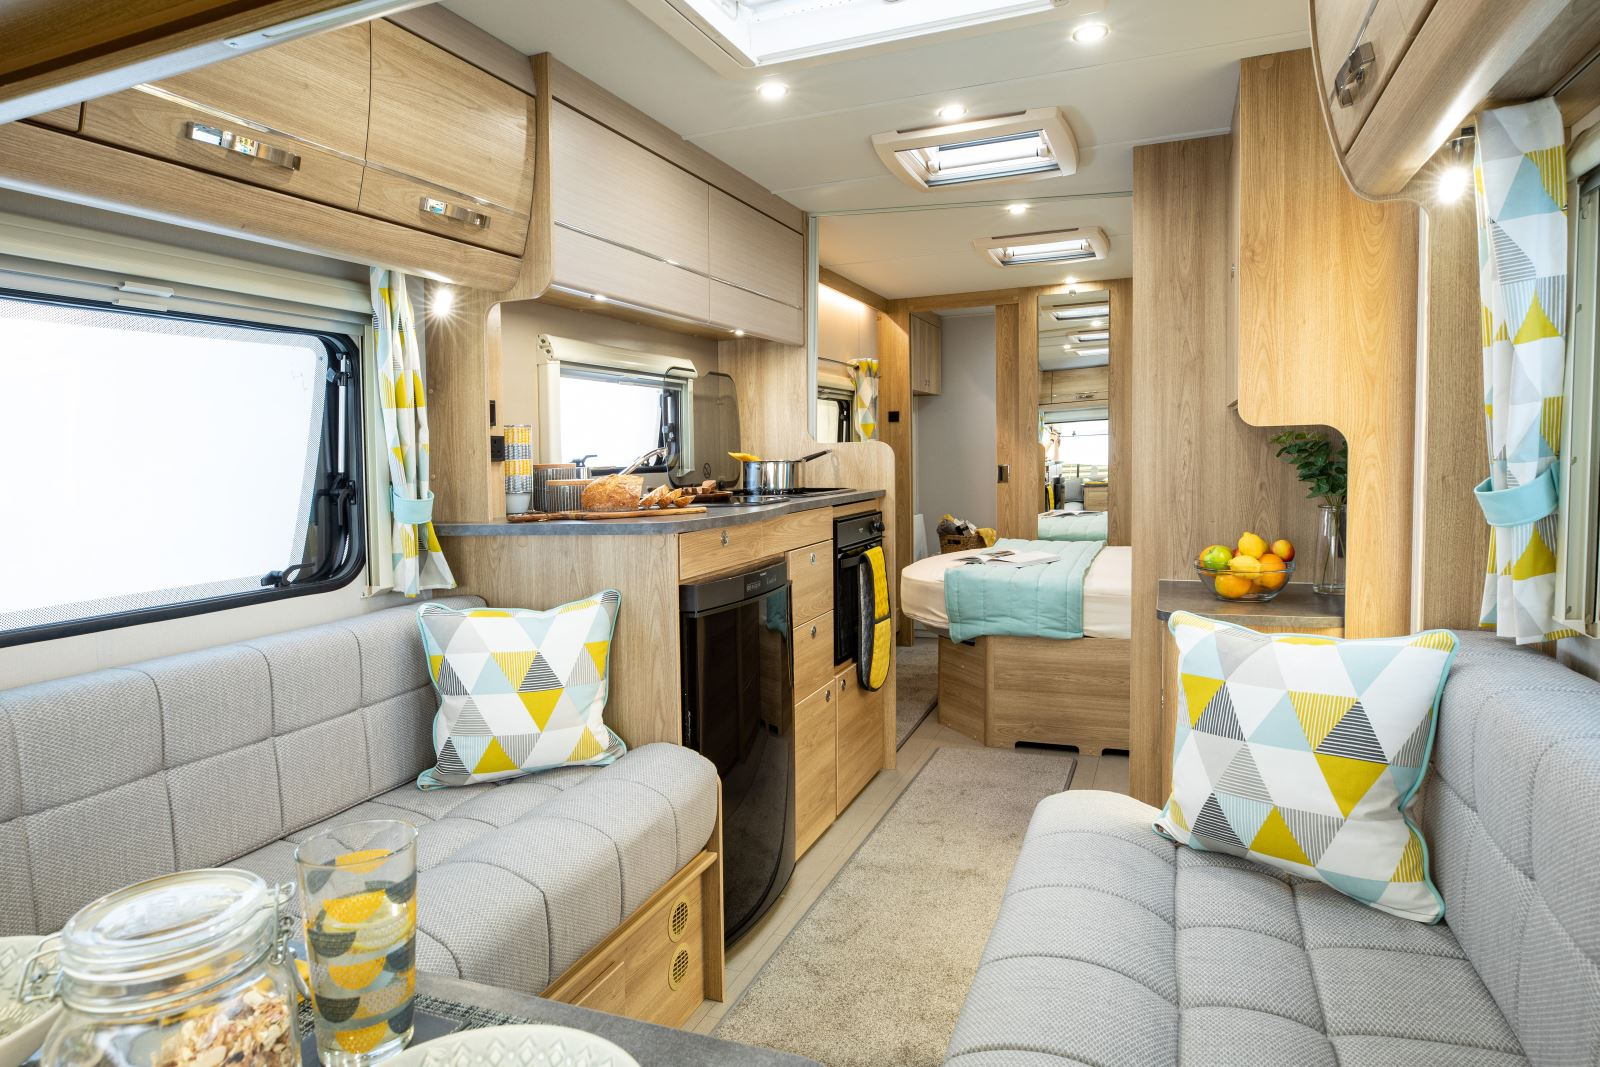 The interior of the Xplore 554 caravan